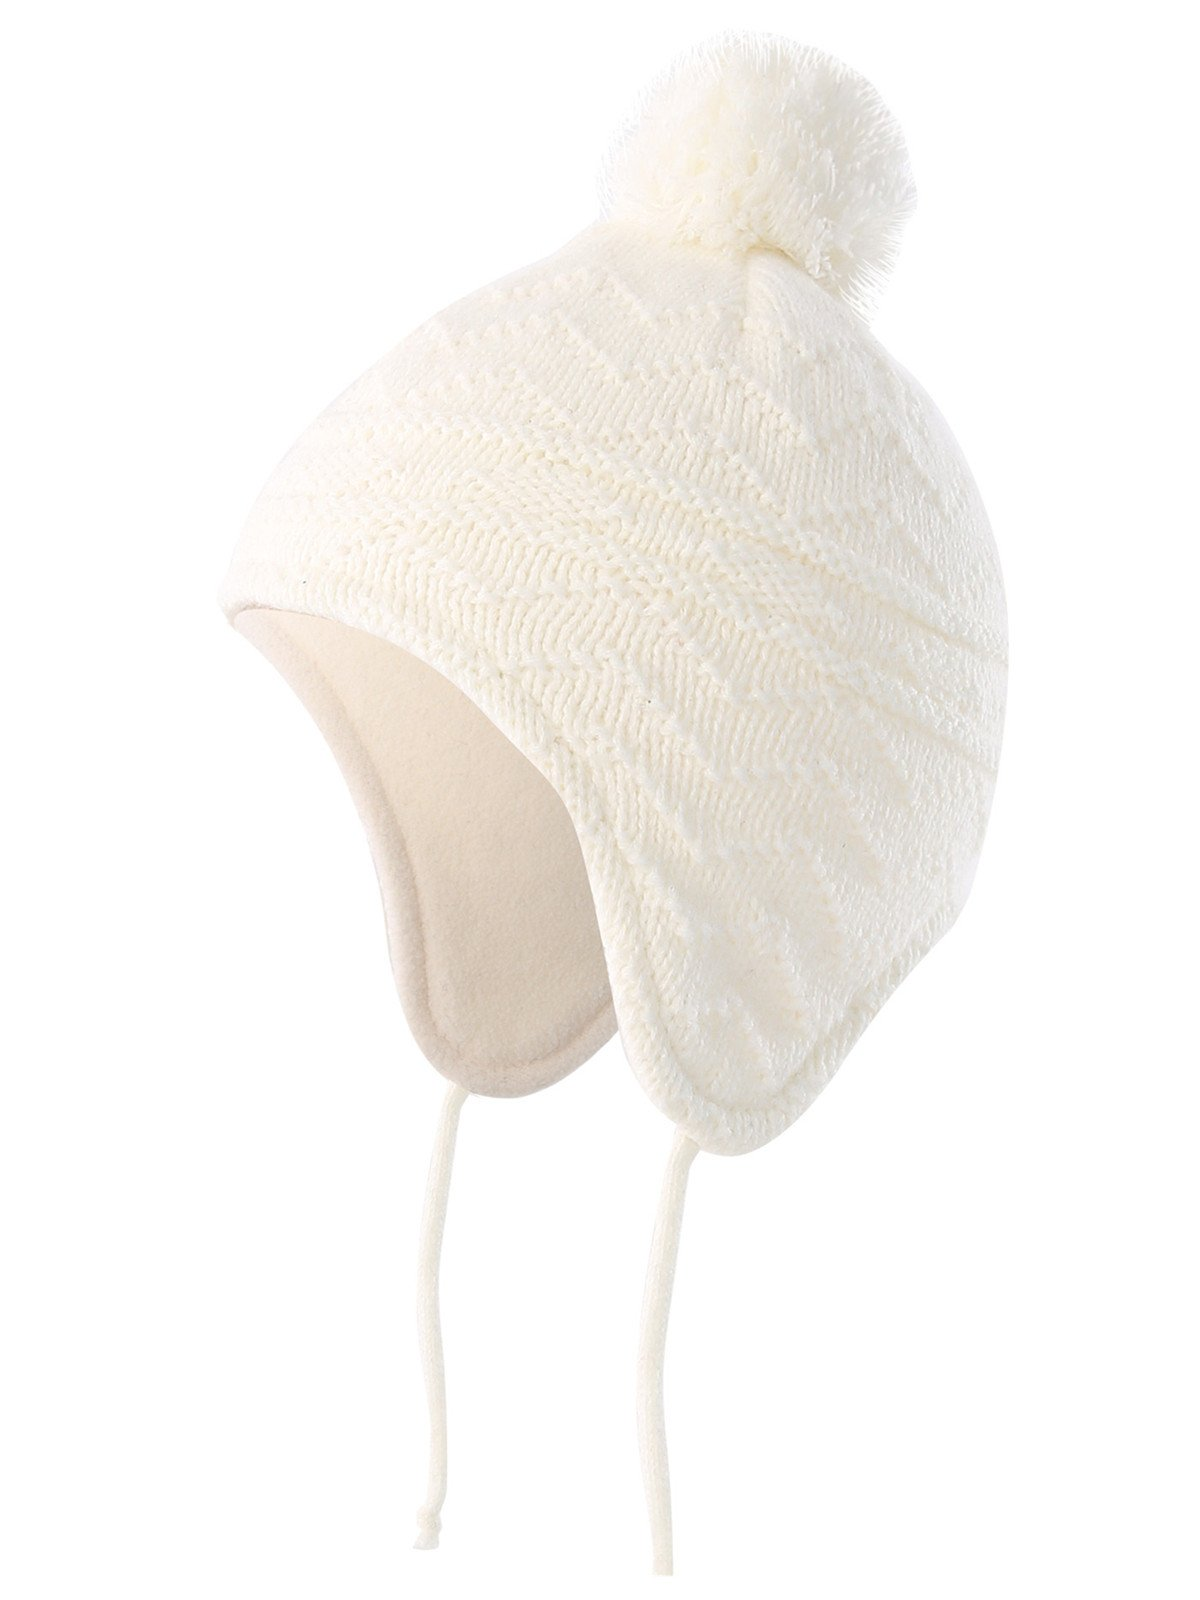 Connectyle Toddler Infant Baby Knit Kids Hat Fleece Lined Beanie Skull Cap with Earflap Warm Winter Beanies Cap,White,S:6M-1.5T(17.3inches-18.5inchesHead Girth)